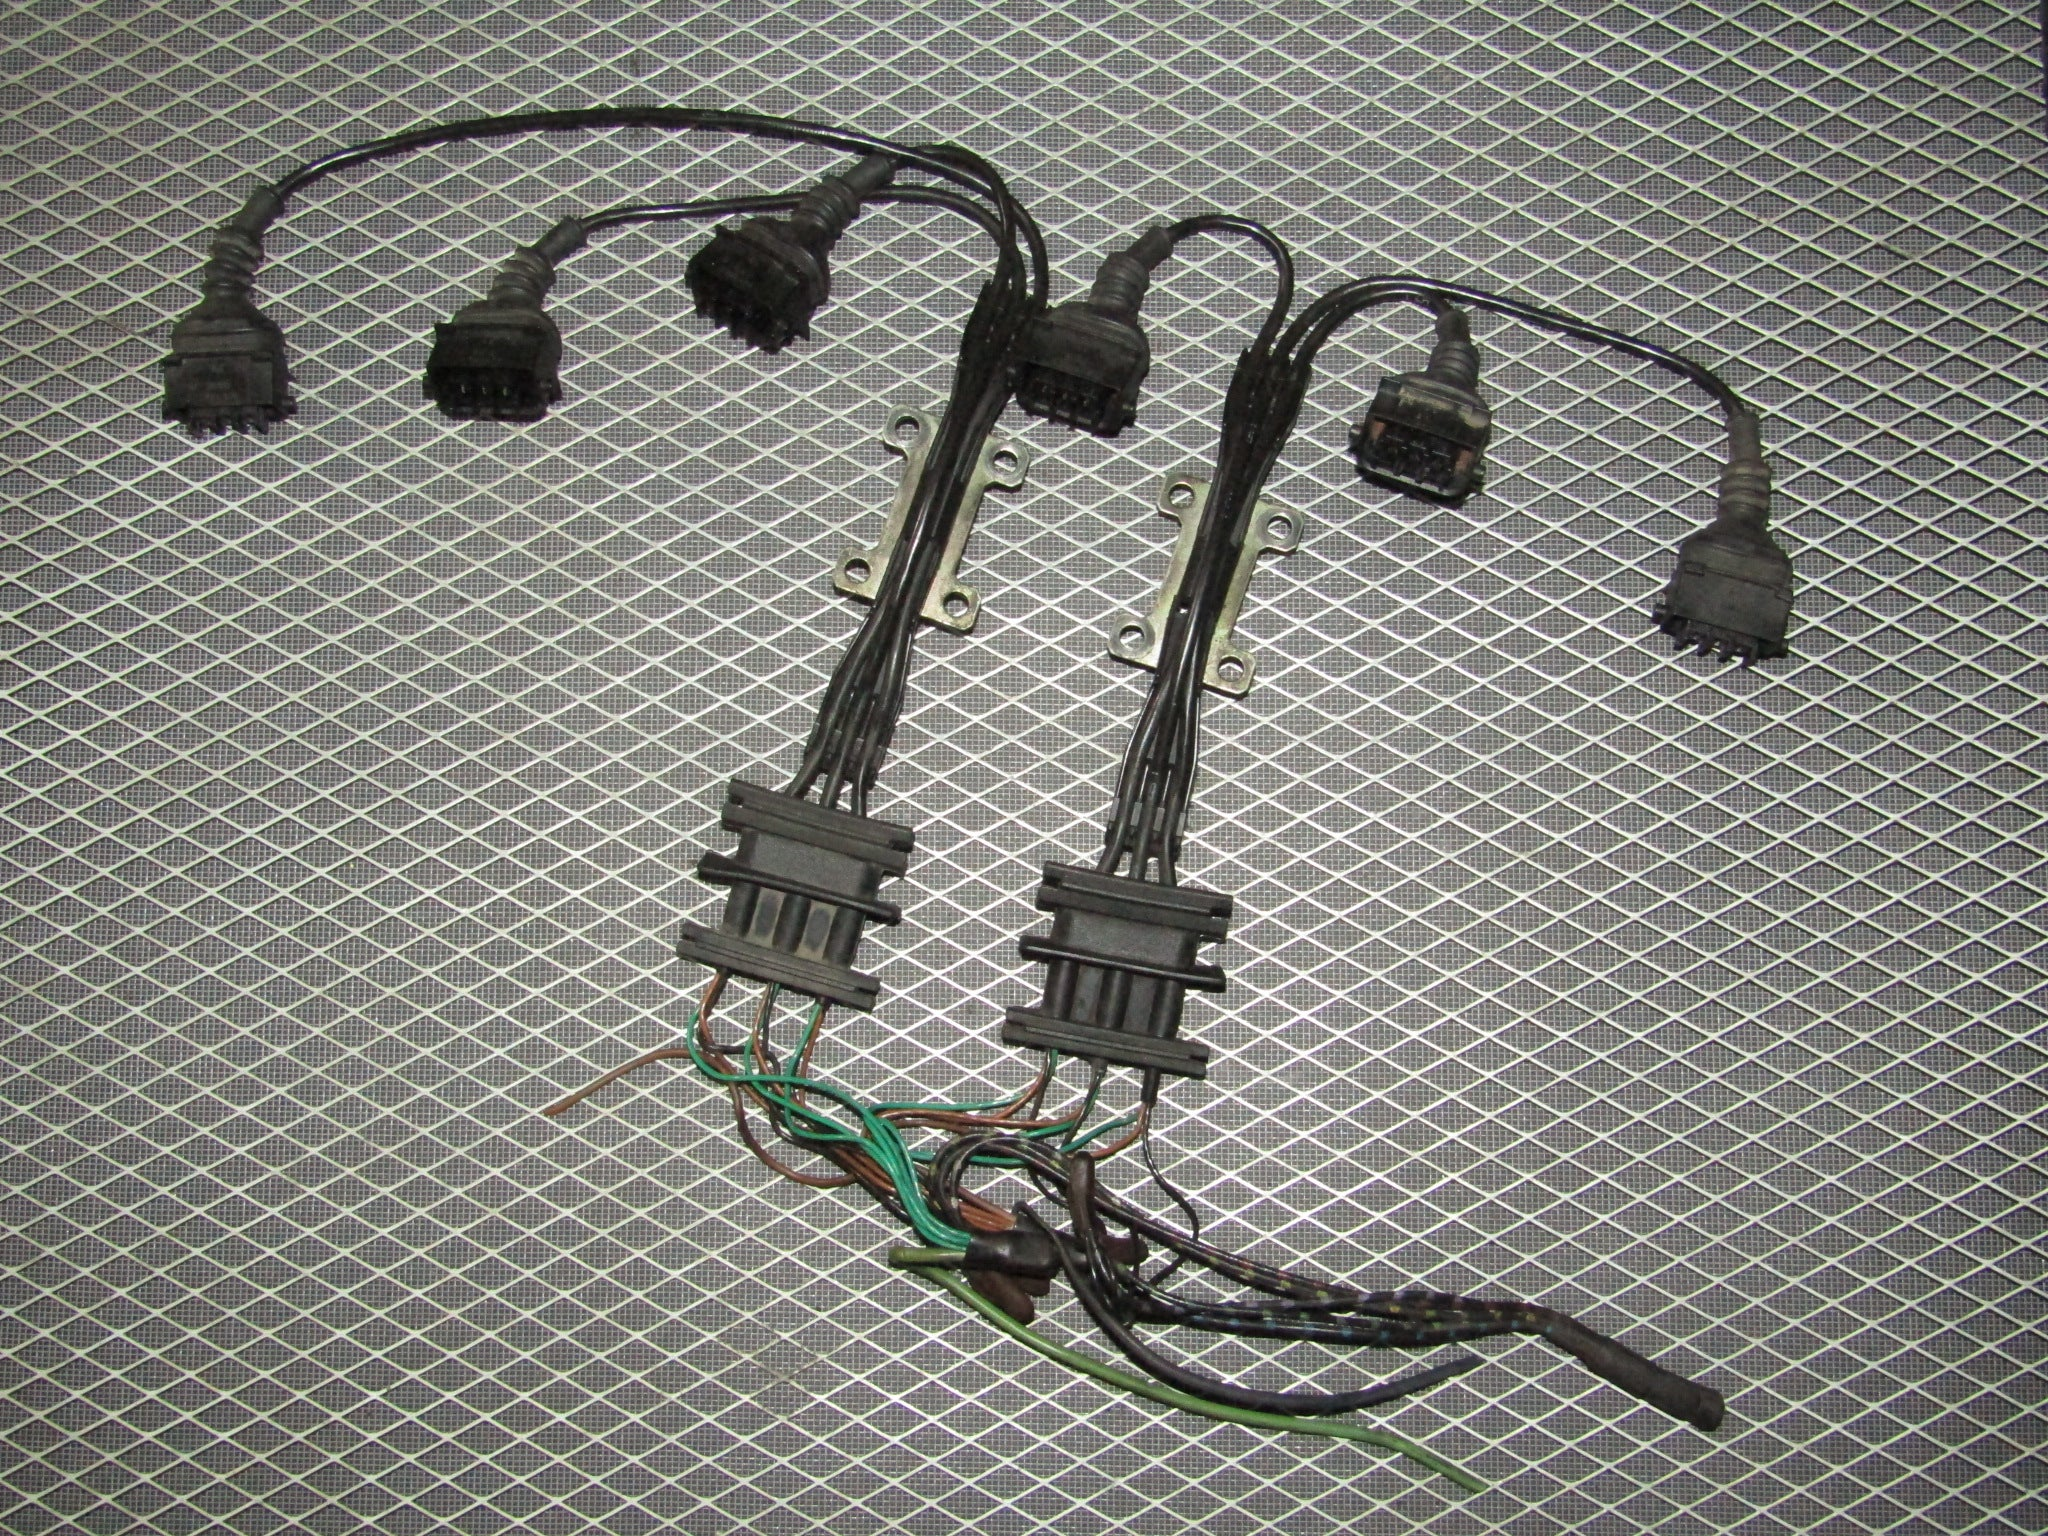 92 93 94 95 bmw 325 oem ignition coil wiring harness - 2 5l